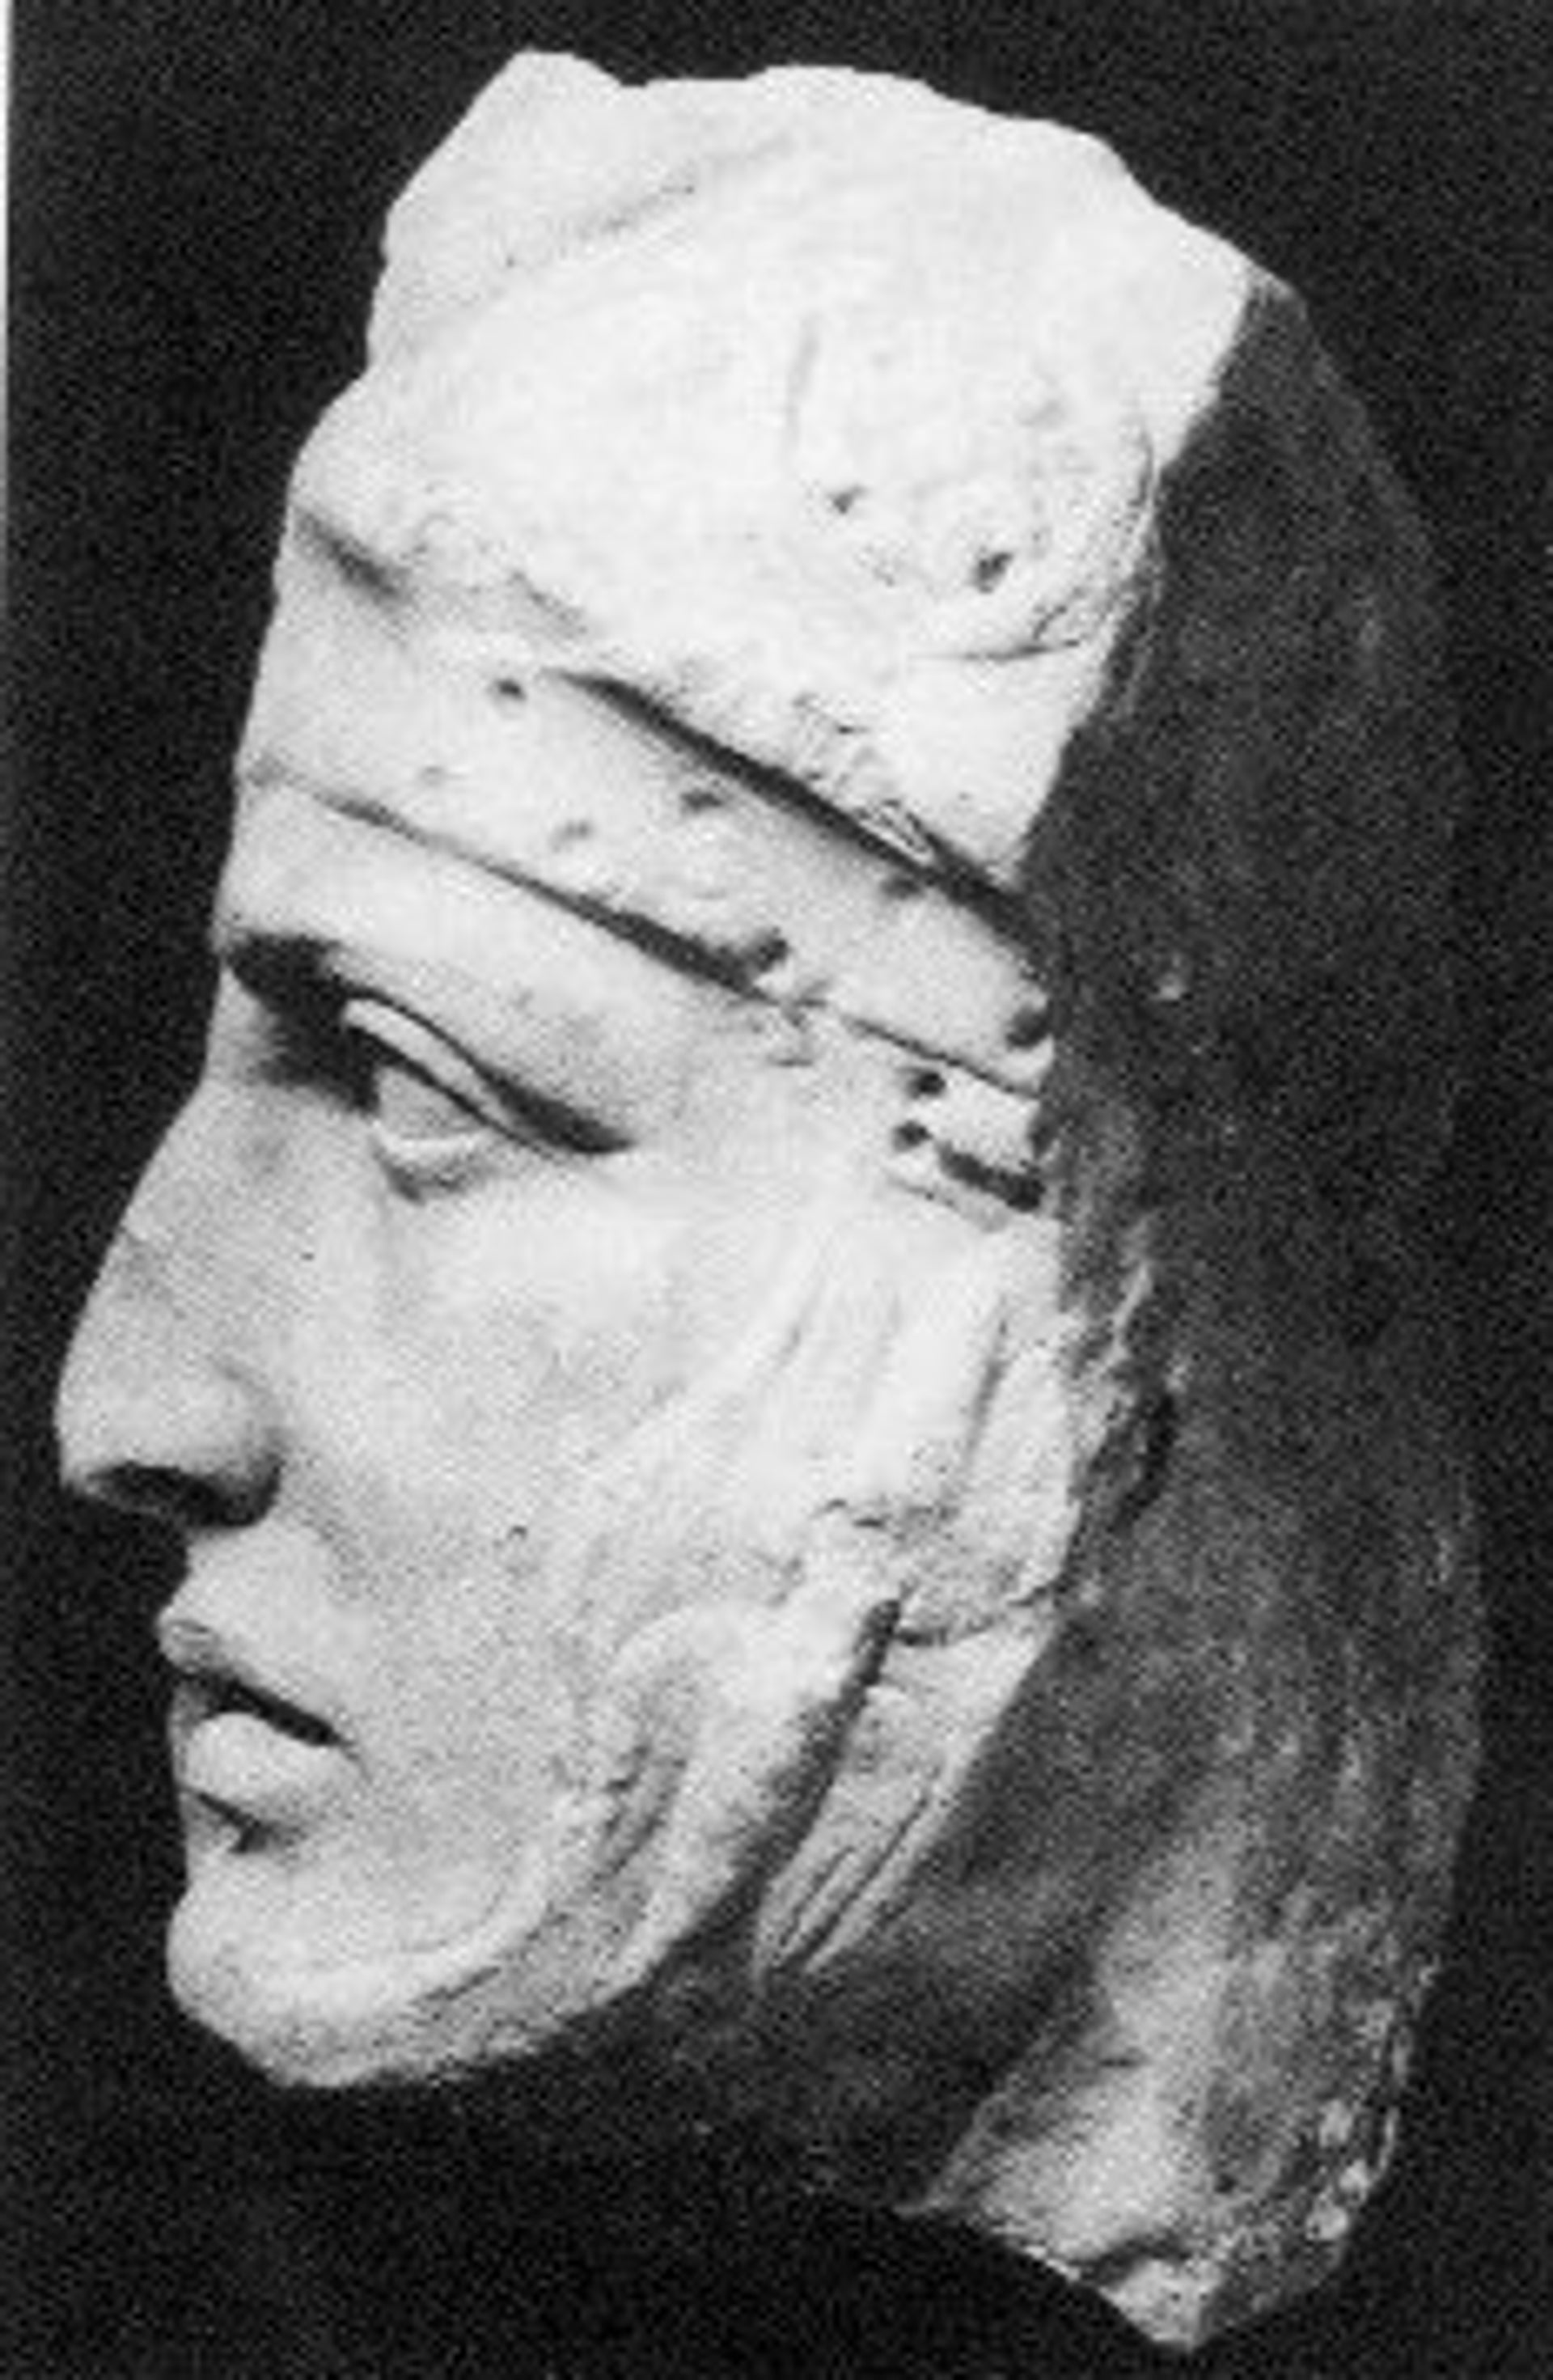 A fragment of a relief depicting the head of a Roman soldier, one of the few surviving pieces of from the arch's decorations.